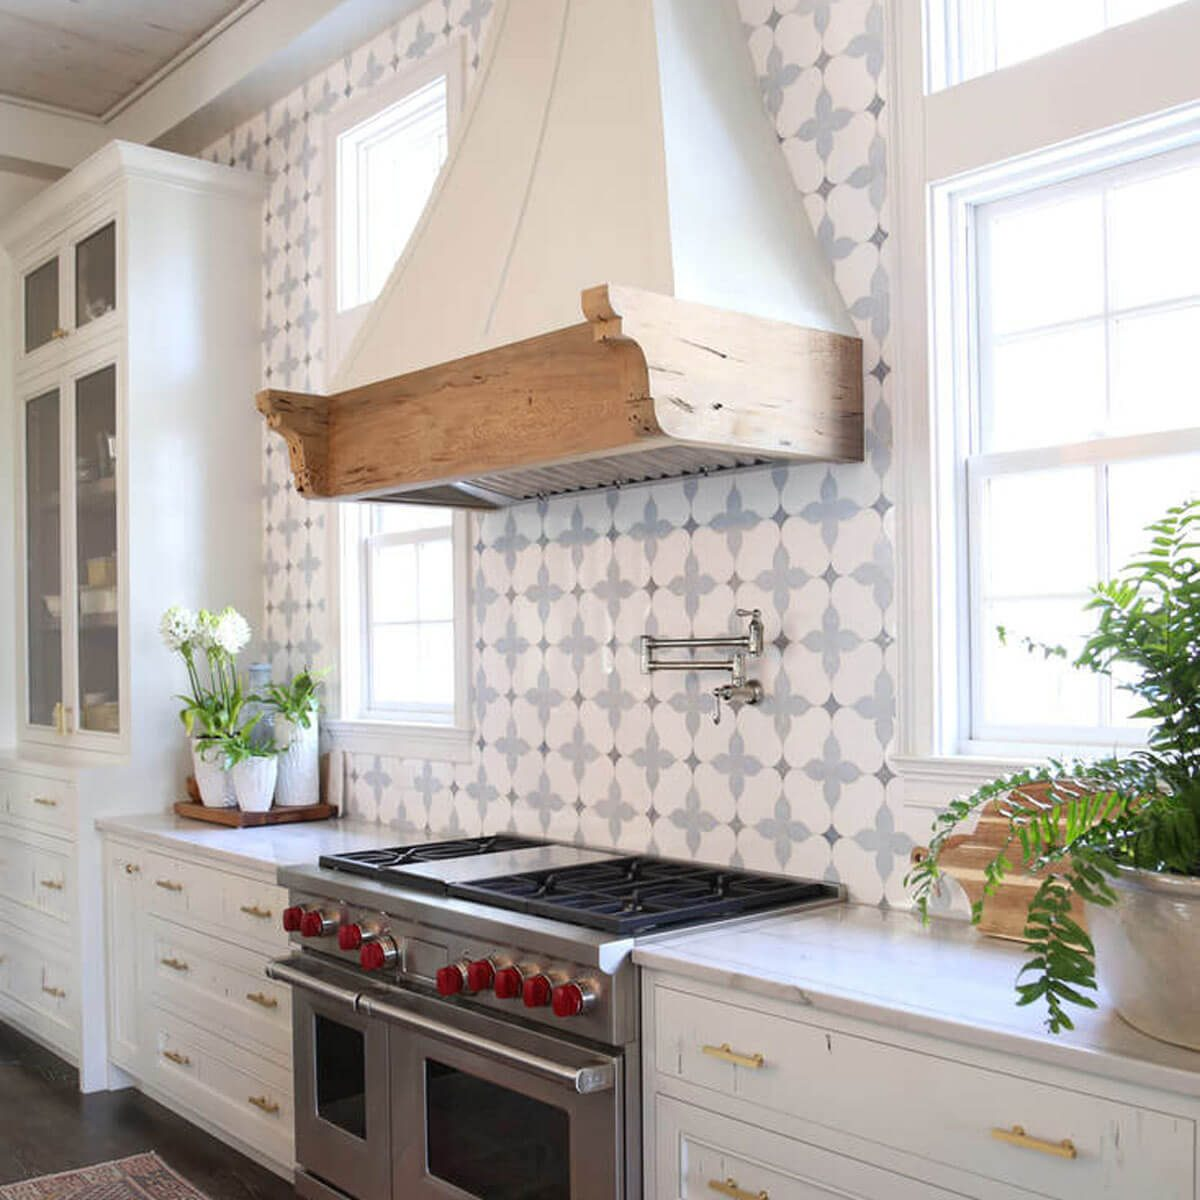 14 Showstopping Tile Backsplash Ideas To Suit Any Style ... on Countertops Backsplash Ideas  id=67598